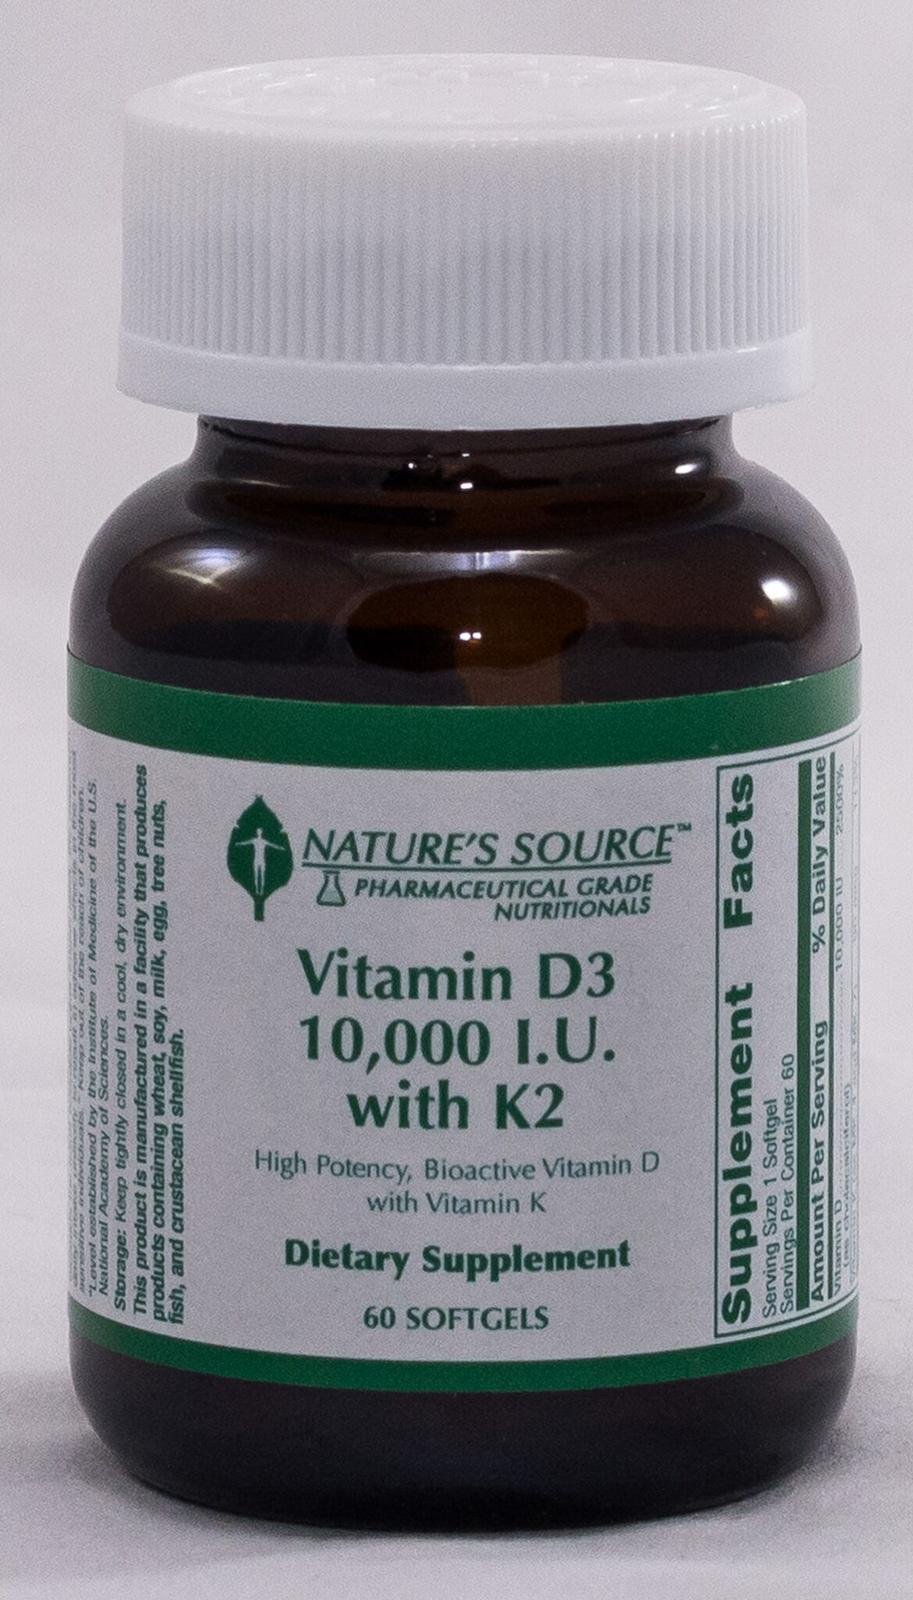 Vitamin D3 10,000 IU & K2 (Nature's Source Vitamins)